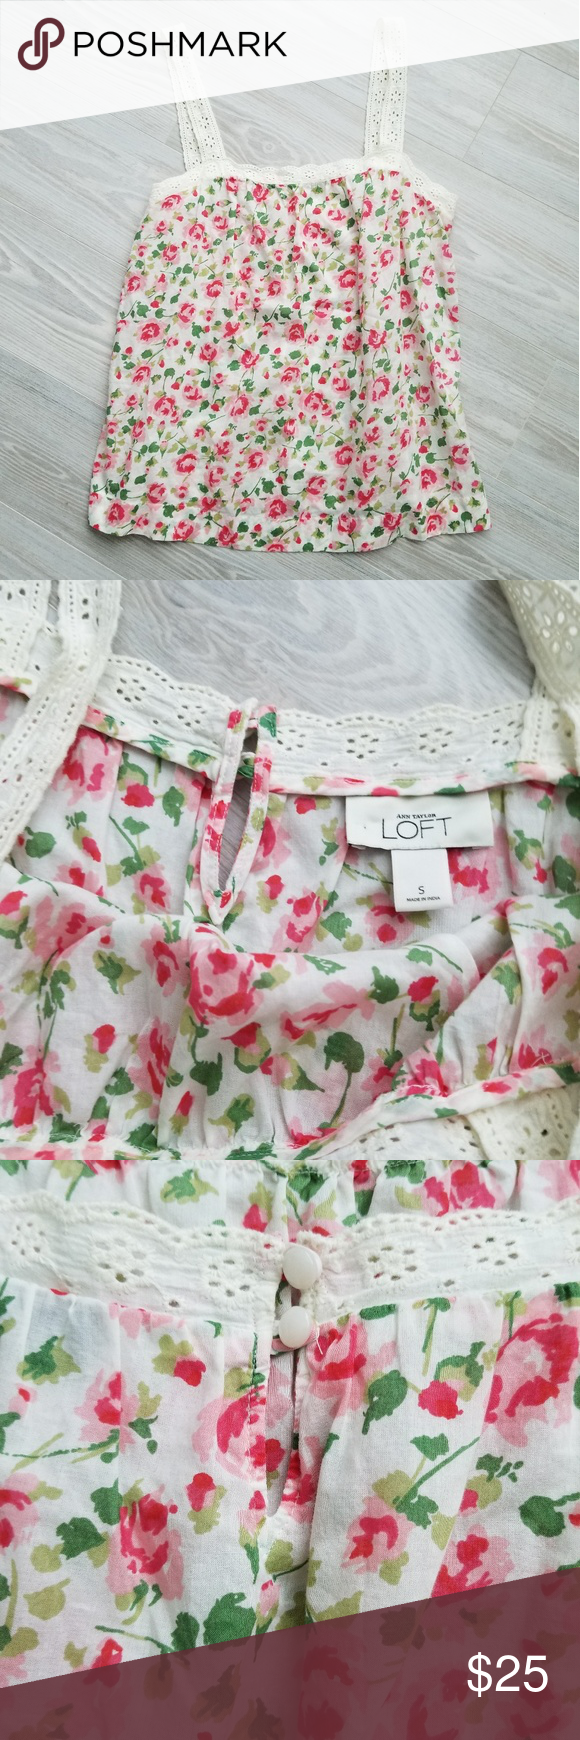 Ann Taylor Loft Rose Country Chic Tank Top Light Loose Fitted Floral Print. Pretty Chic Tank Top. Perfect Condition. I love Loft clothing always well made and looks great on. Sadly I should have bought an xs in this top. So pretty! LOFT Tops Tank Tops #loftclothes